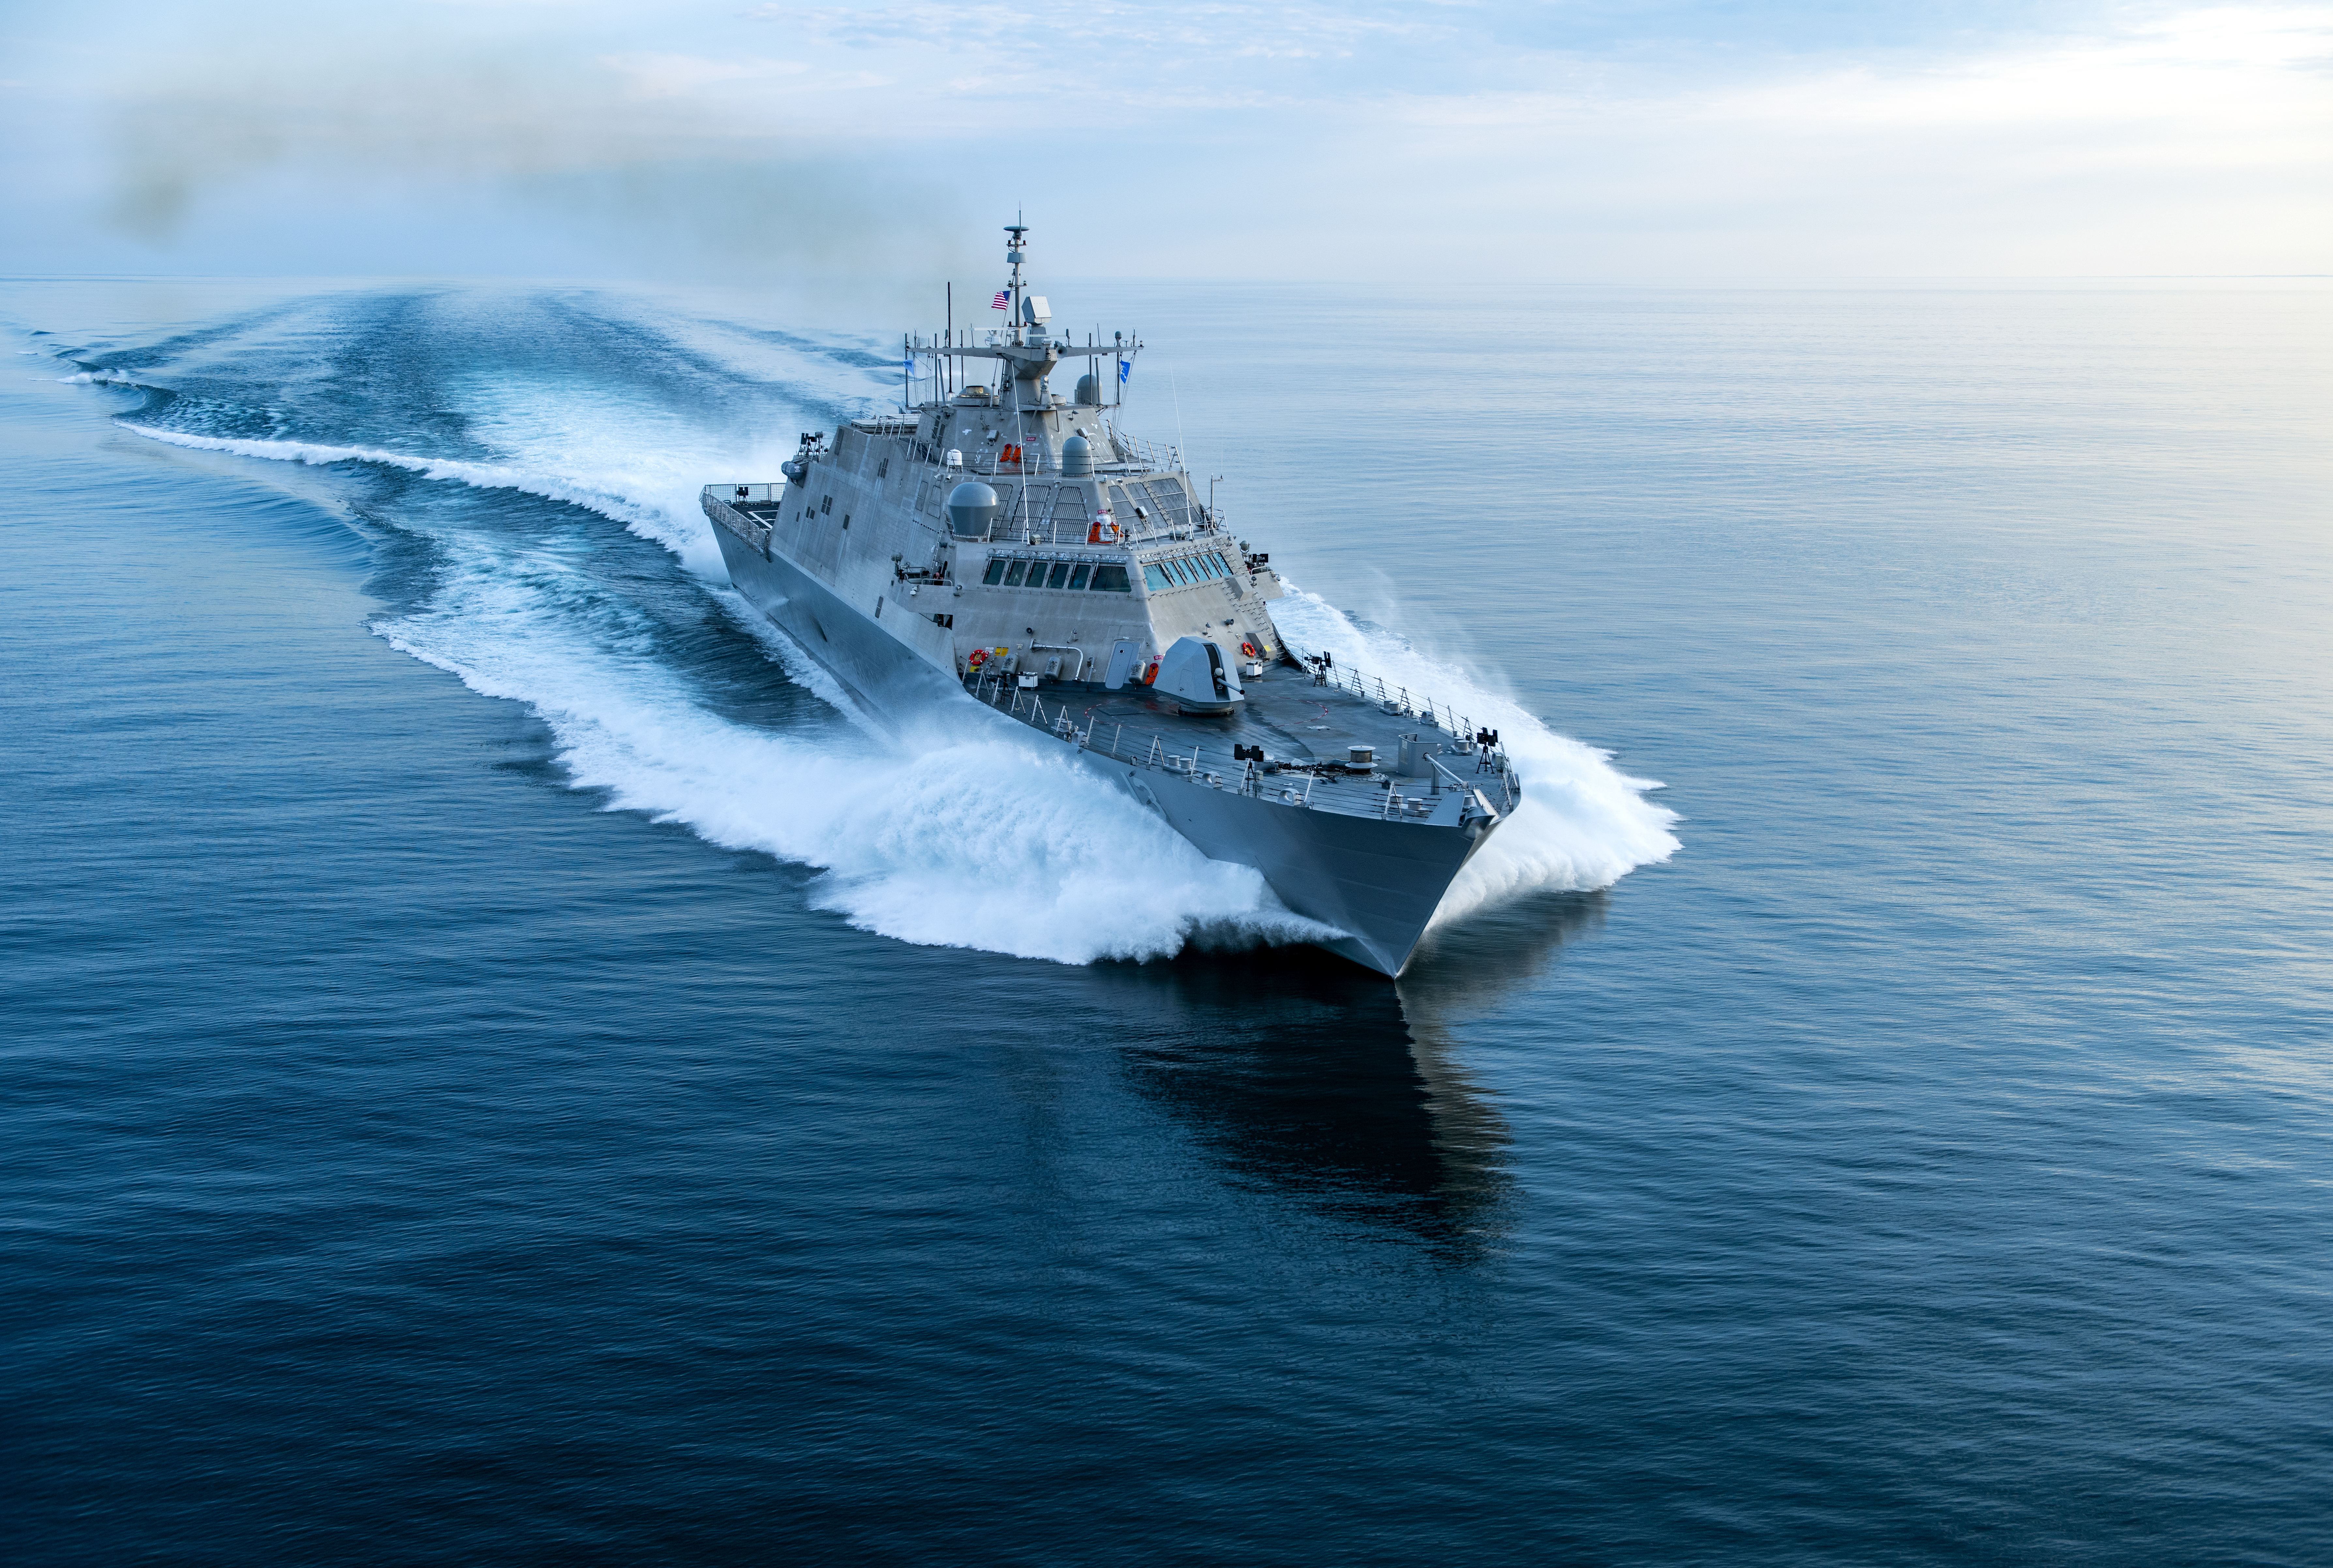 LCS Mission Package Office Focused On Test, Fielding